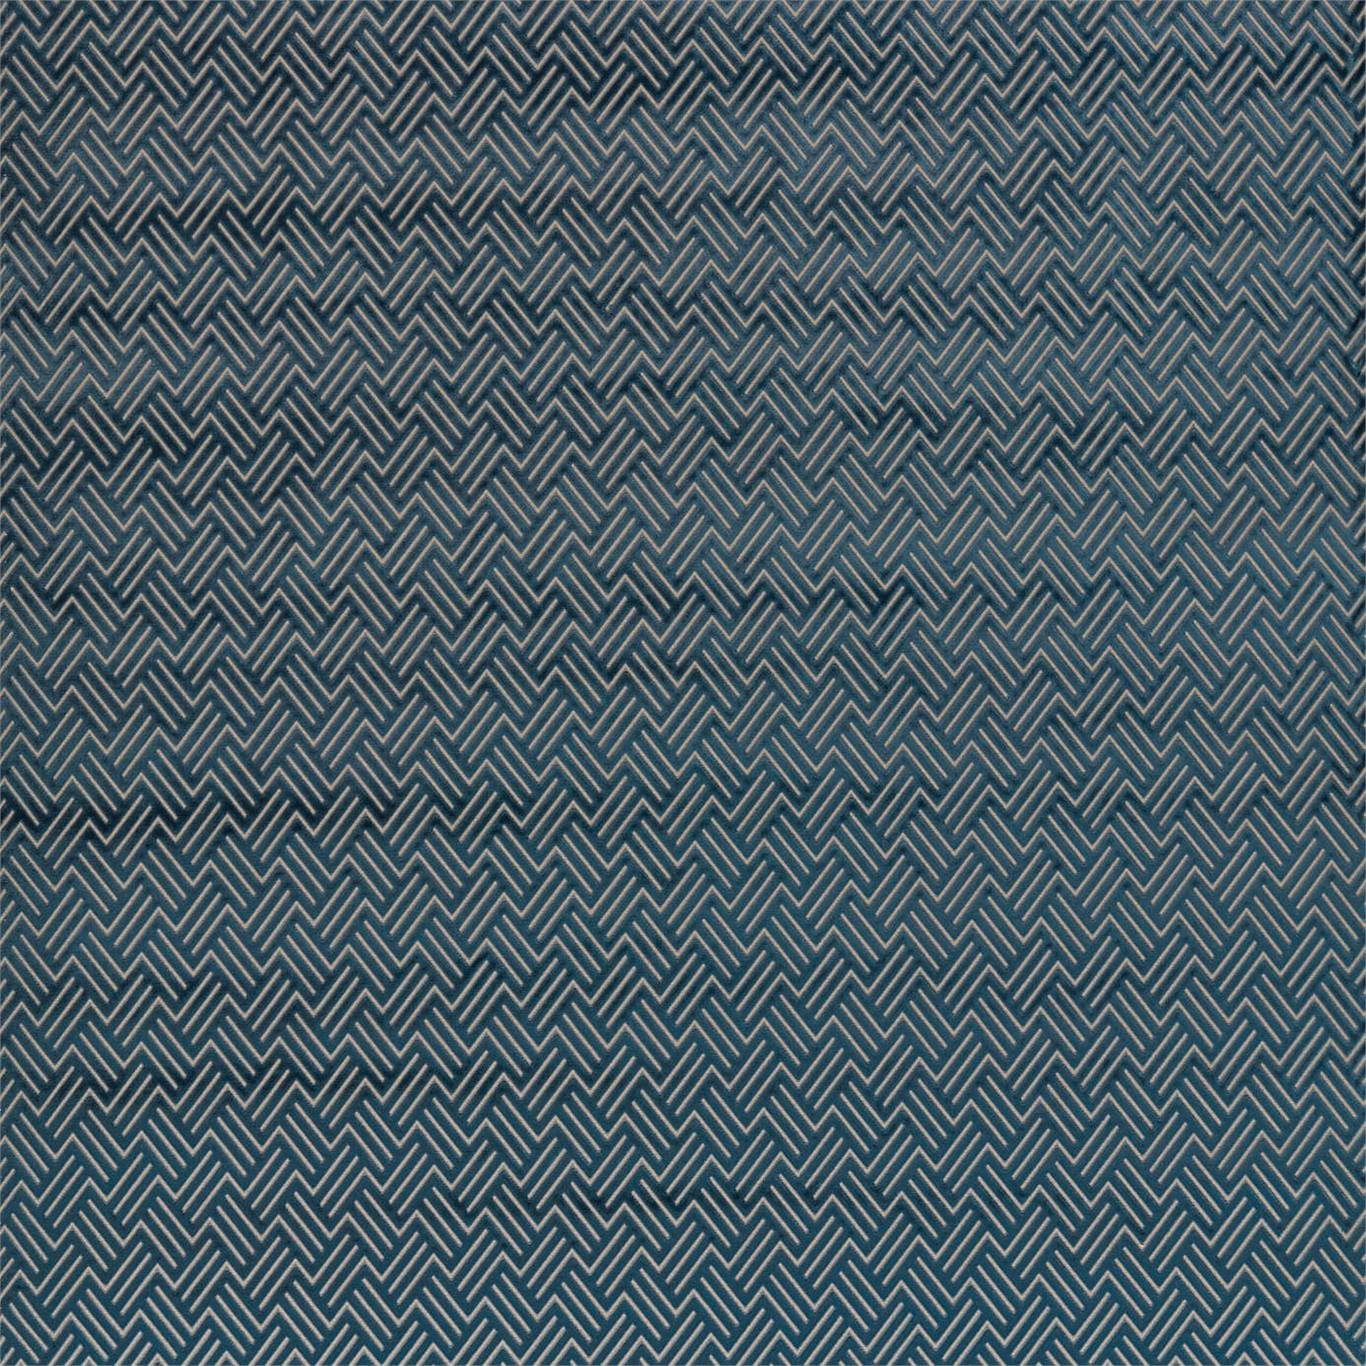 HMTC133485 Collection - Momentum 13 Fabric